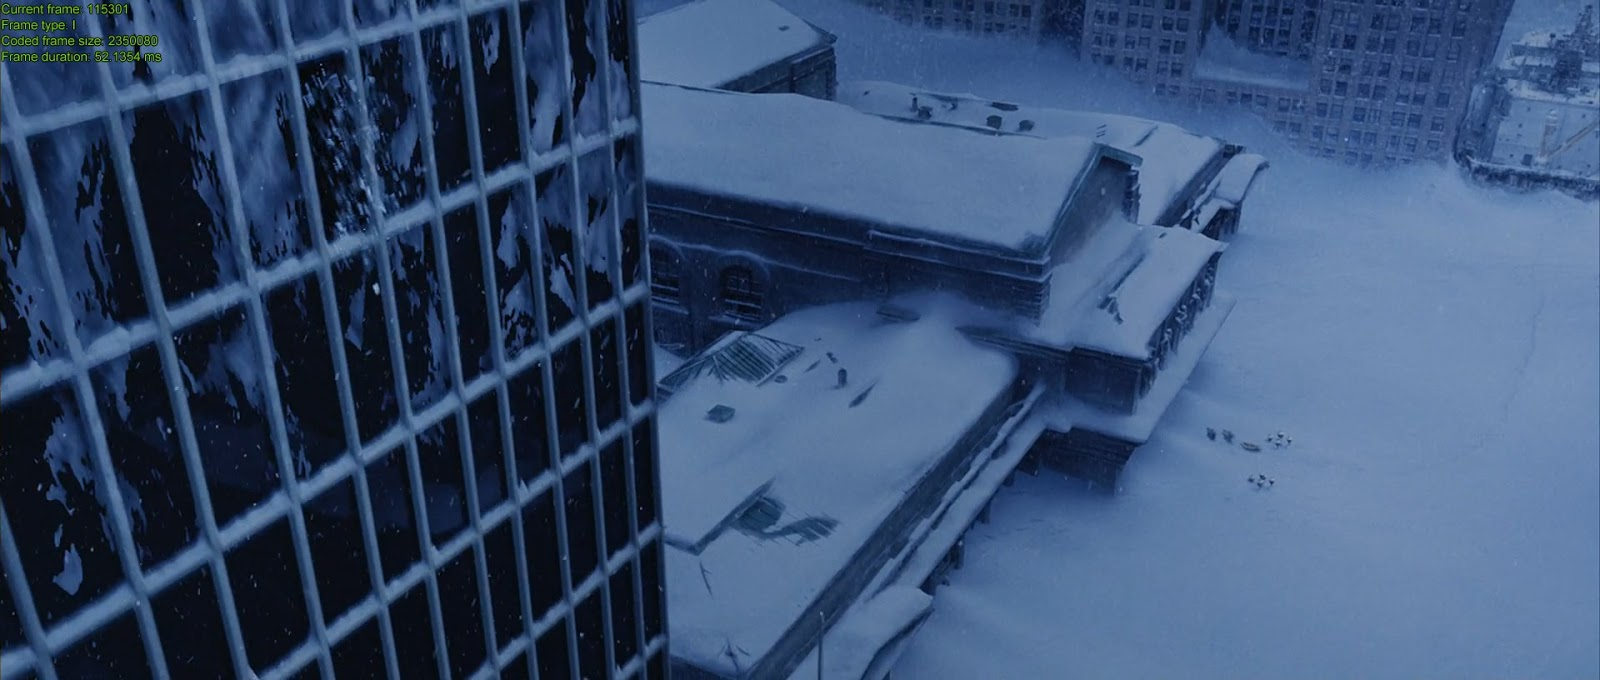 The Day After Tomorrow (2004) 3